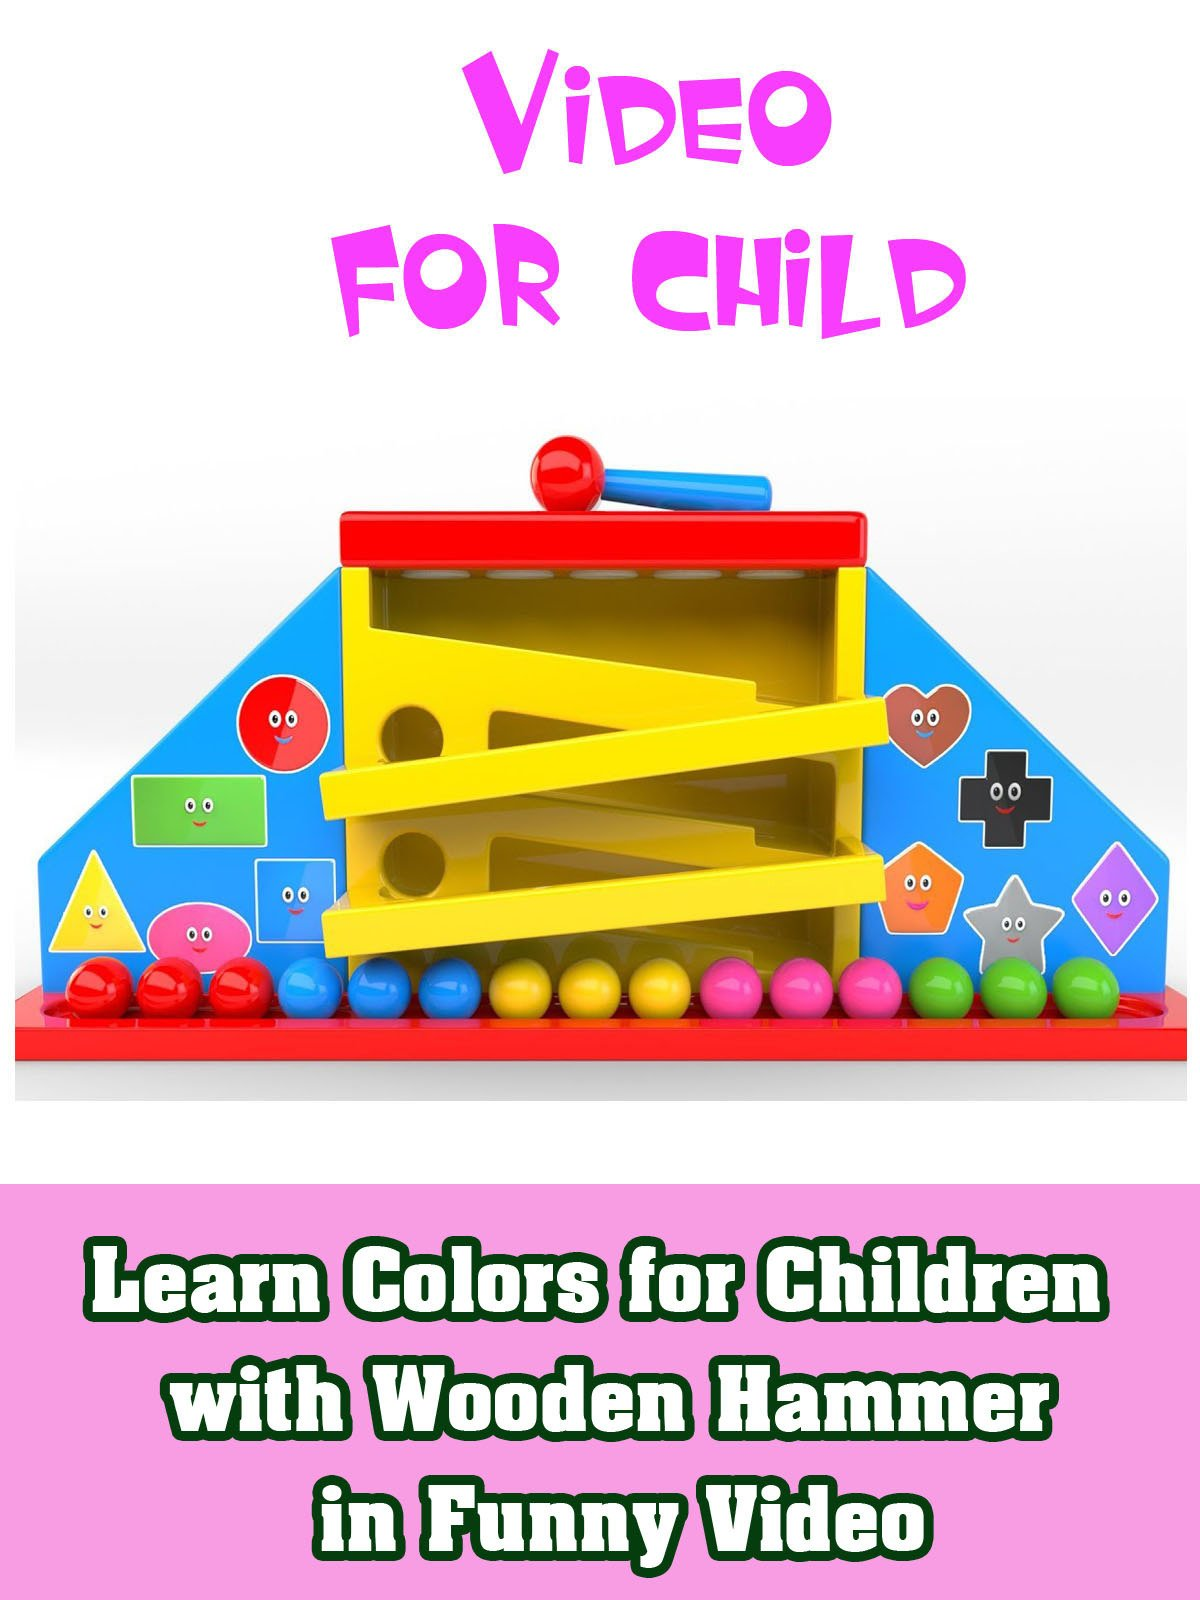 Learn Colors for children with wooden Hammer in funny video